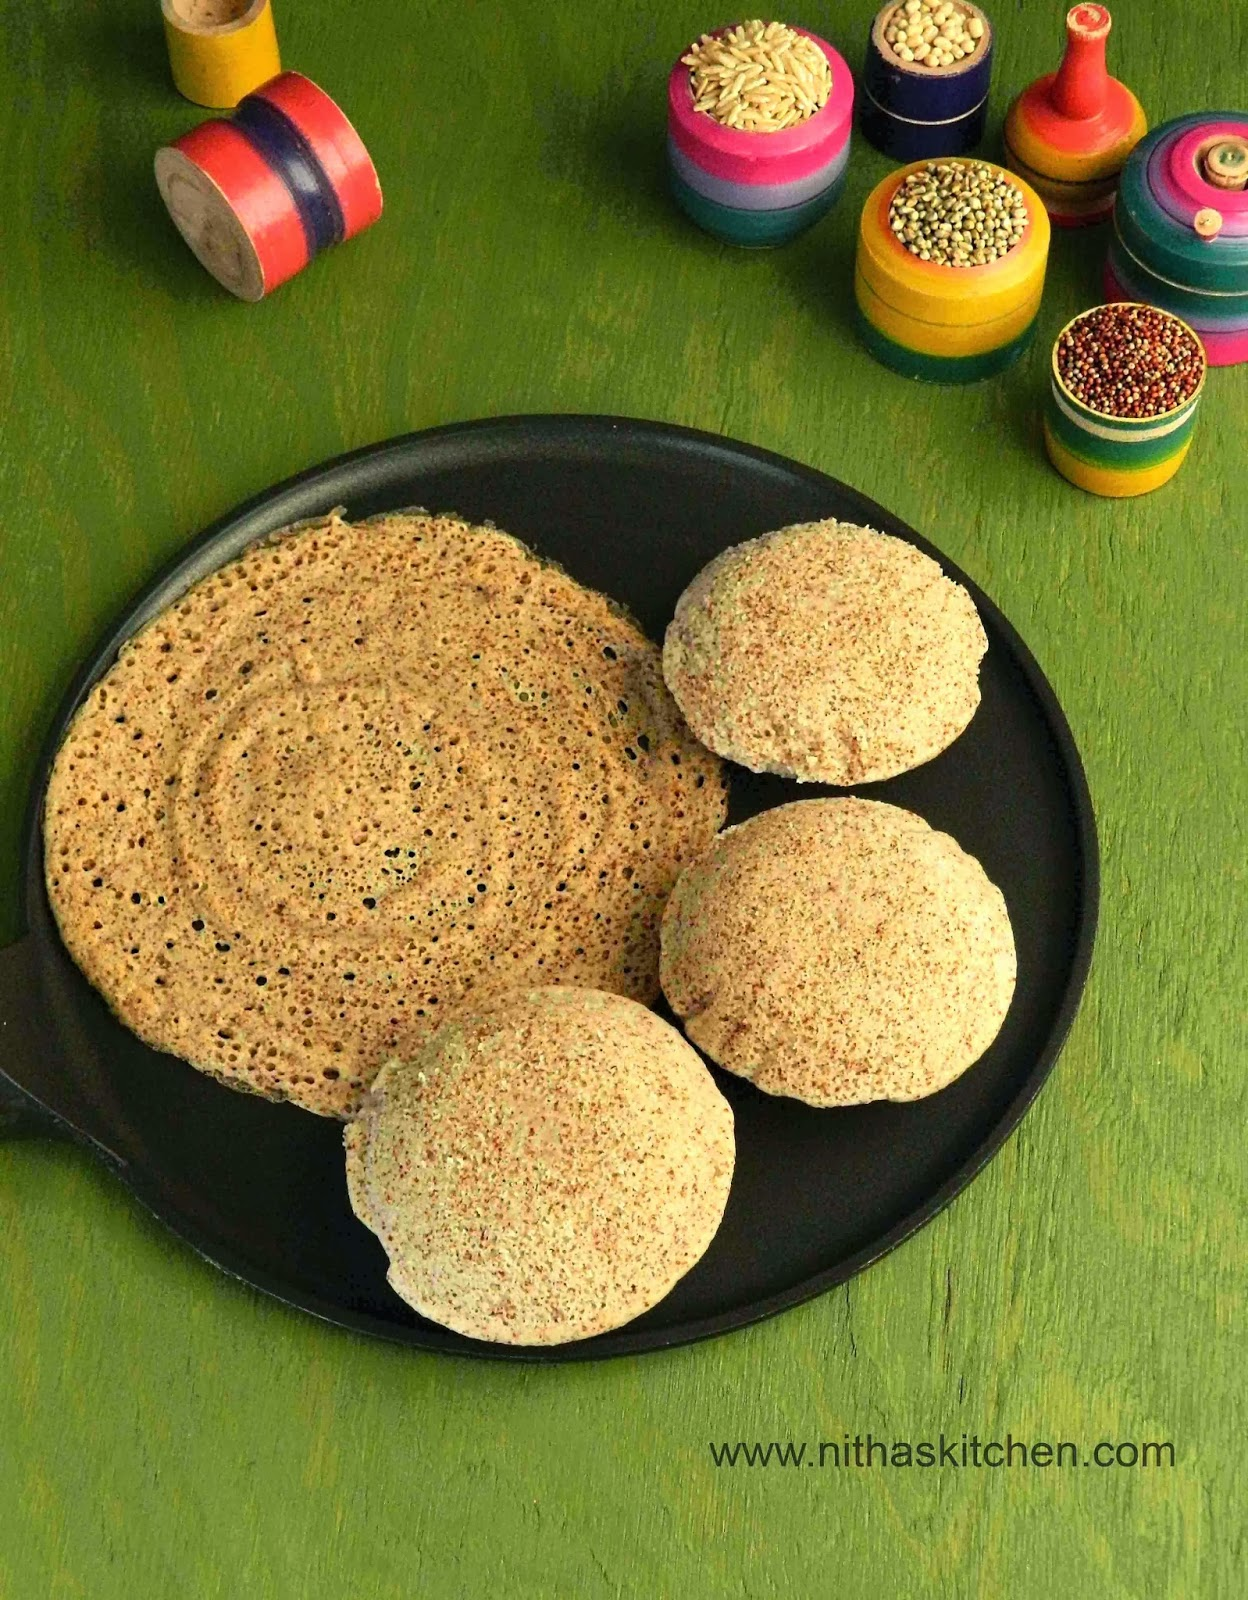 Whole Grain Millet Idli Dosa Batter Recipe | Homemade Multigrain Idli Batter